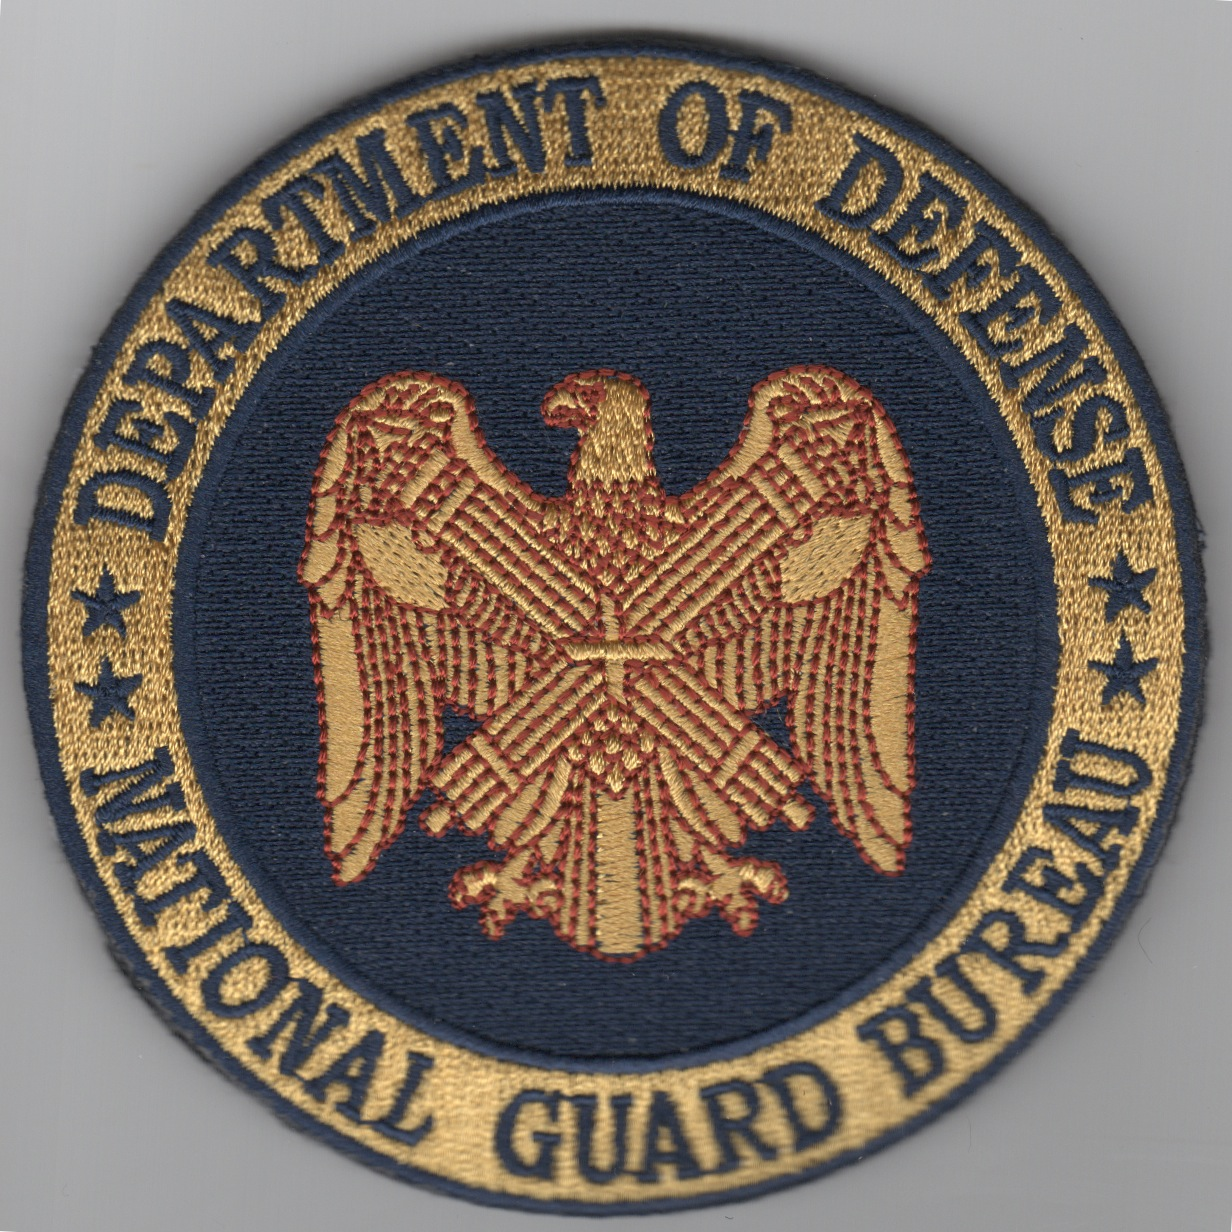 National Guard Bureau/DoD (Velcro)